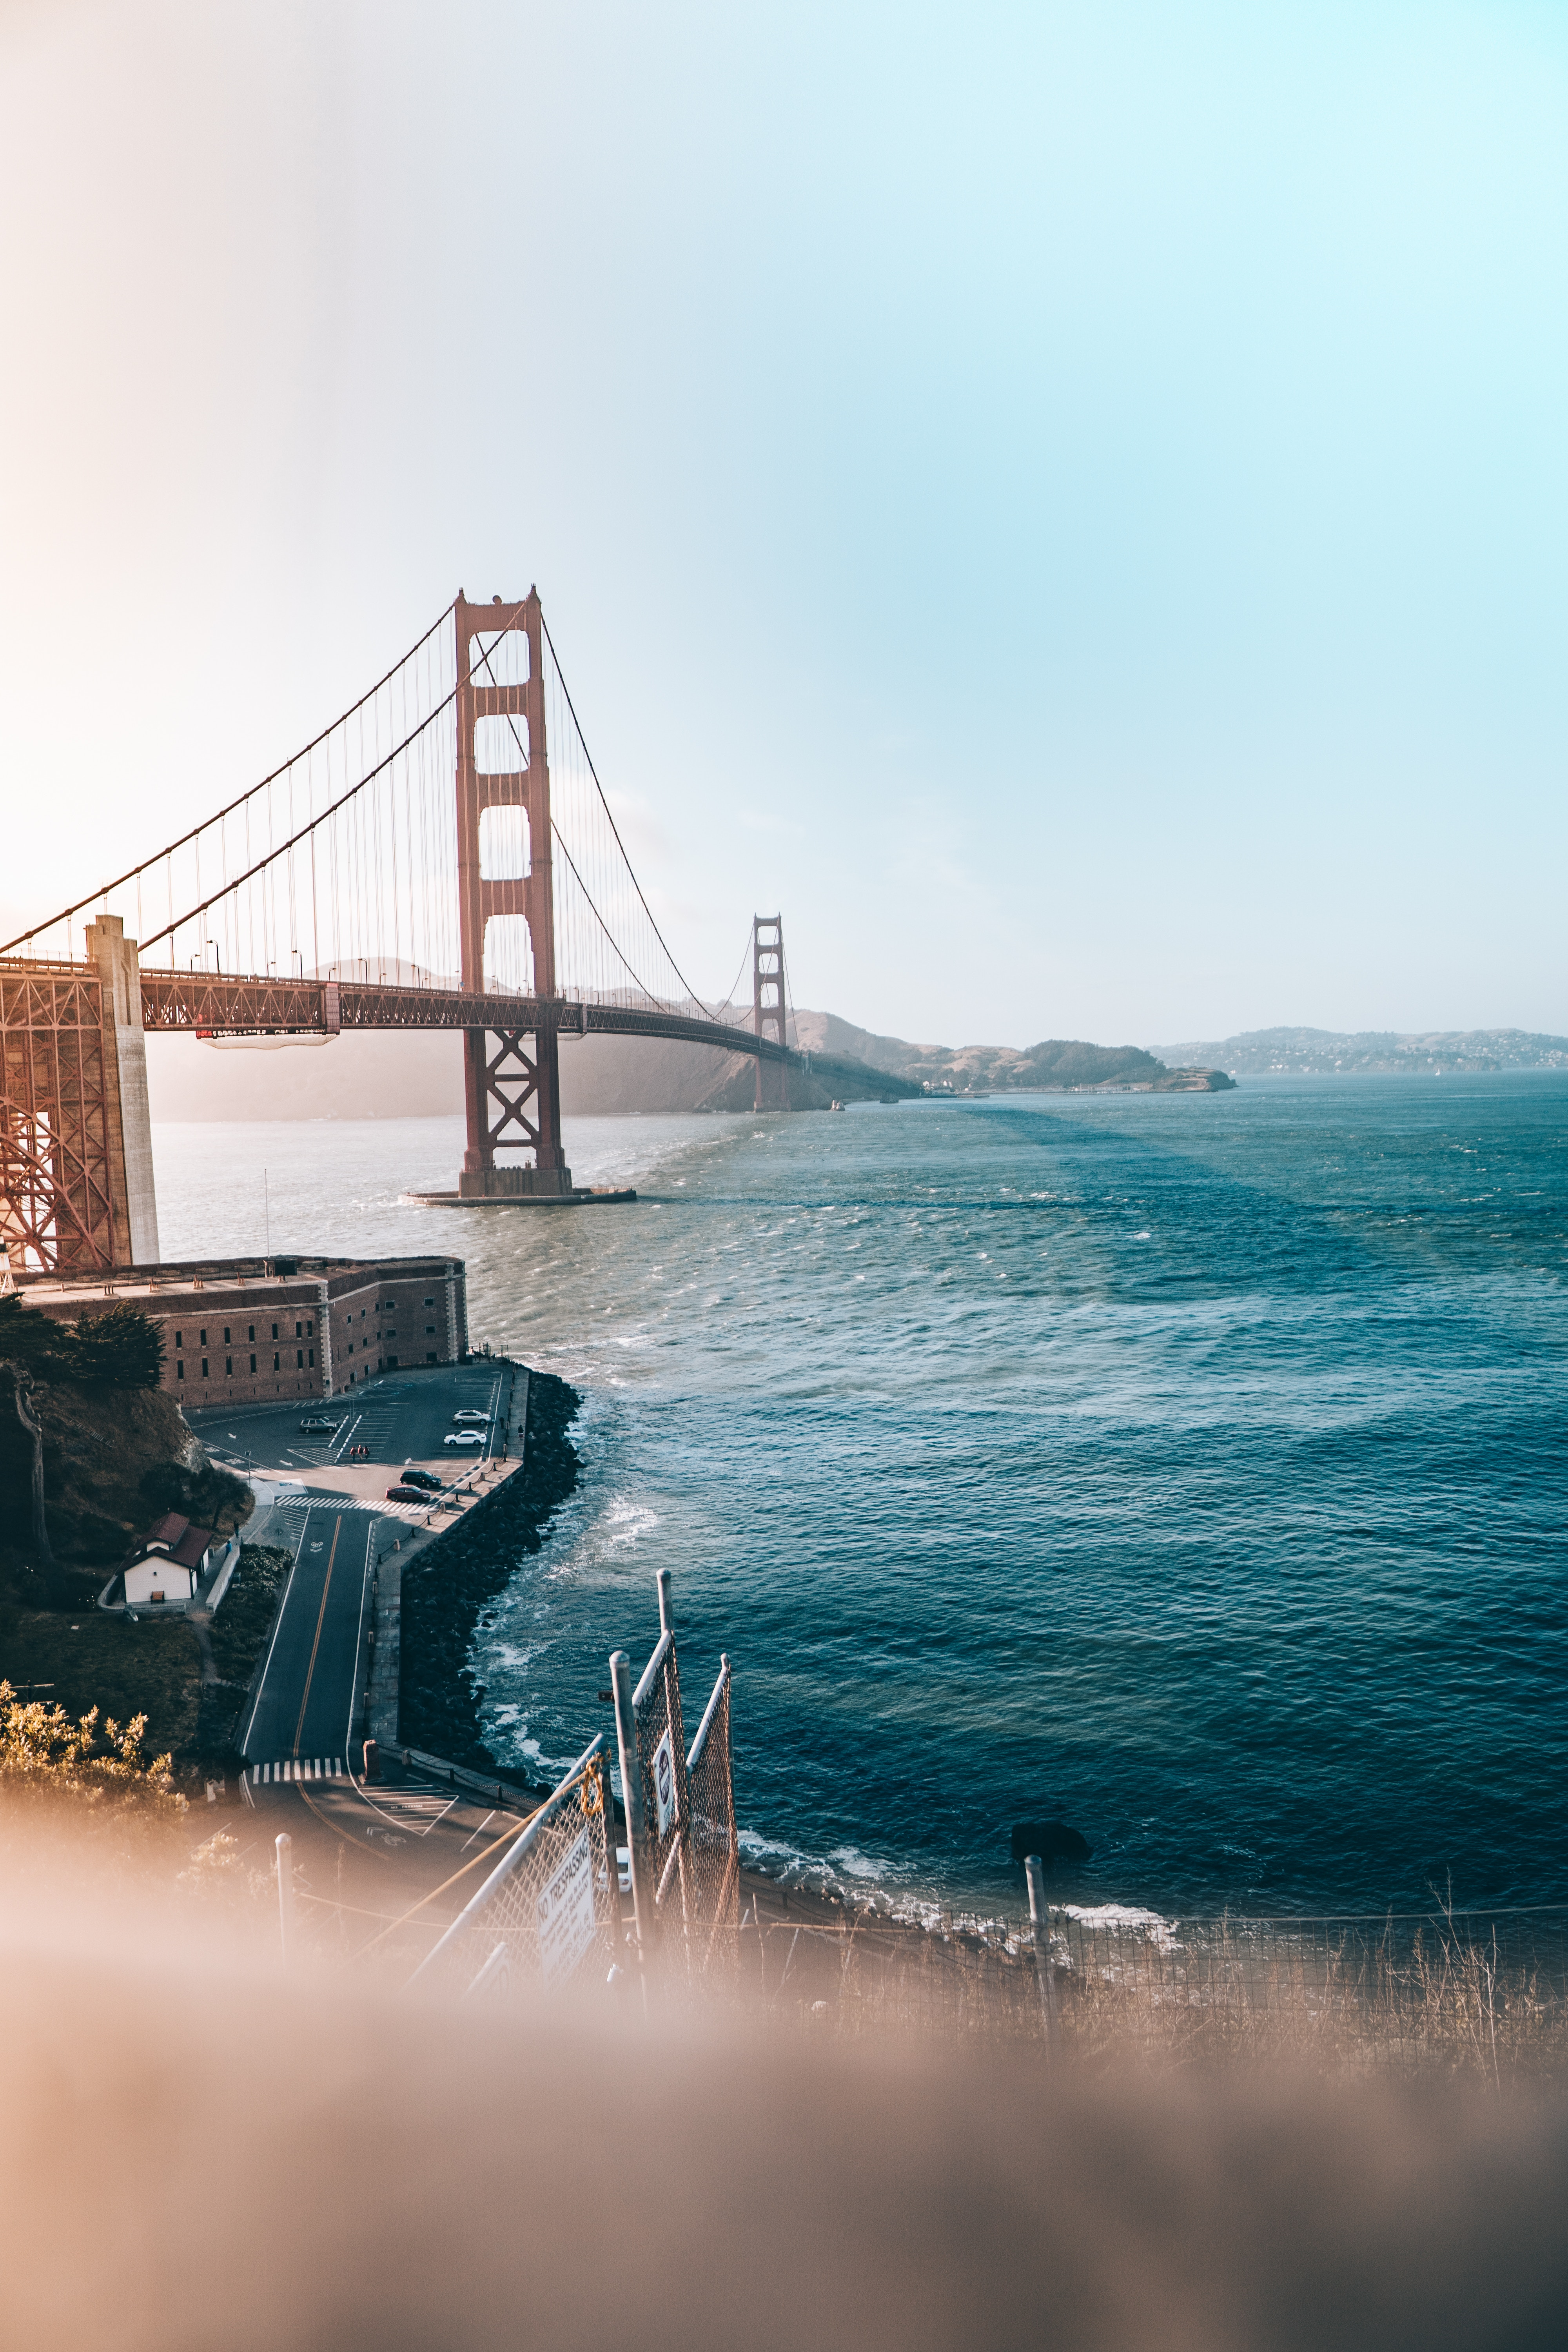 4000x6000 100+ San Francisco Pictures [Stunning] | Download Free Images on ...